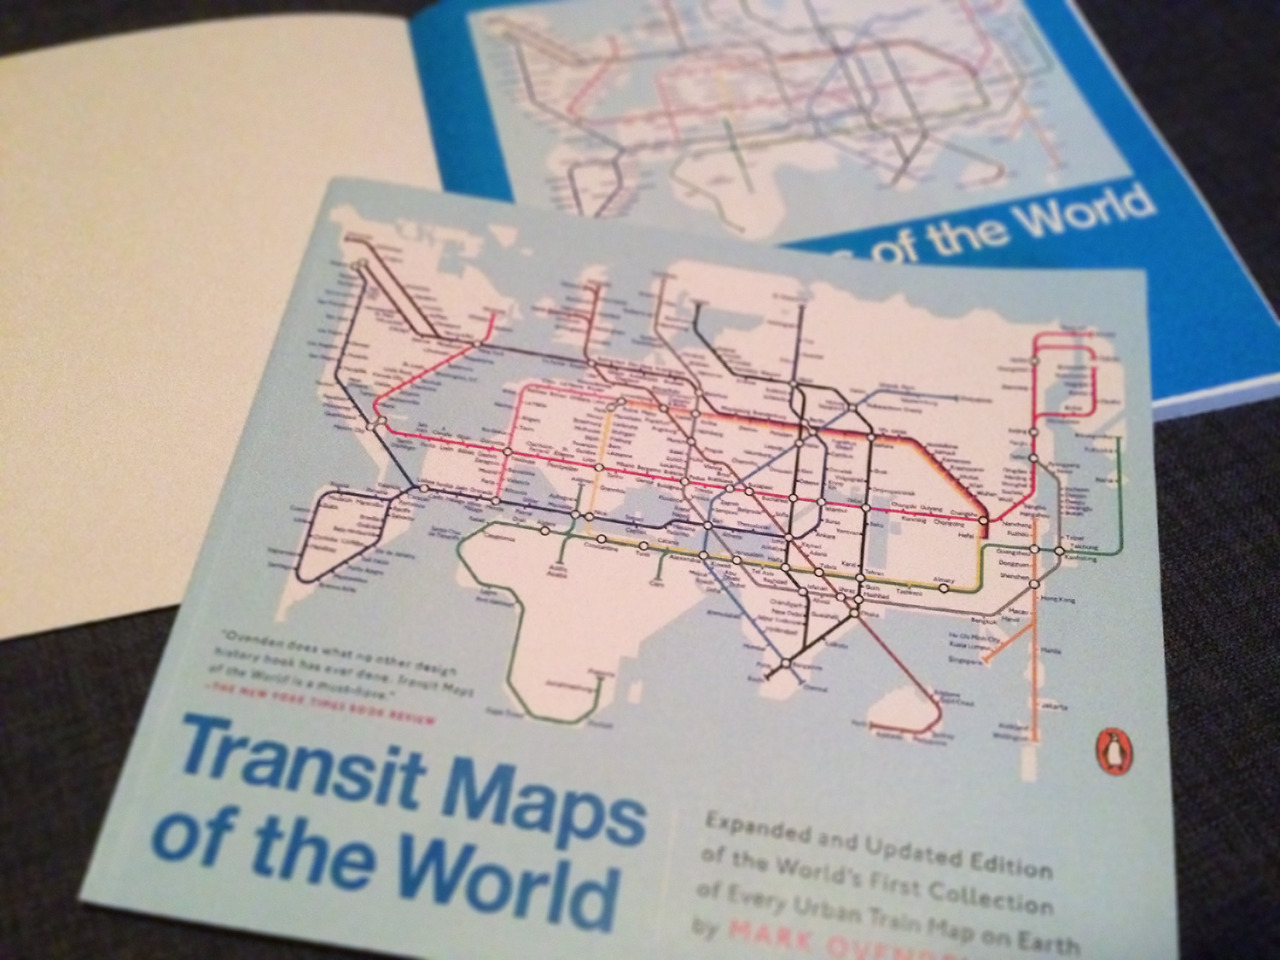 Book review transit maps of the world 2015 transit maps book review transit maps of the world 2015 revised edition by mark gumiabroncs Image collections